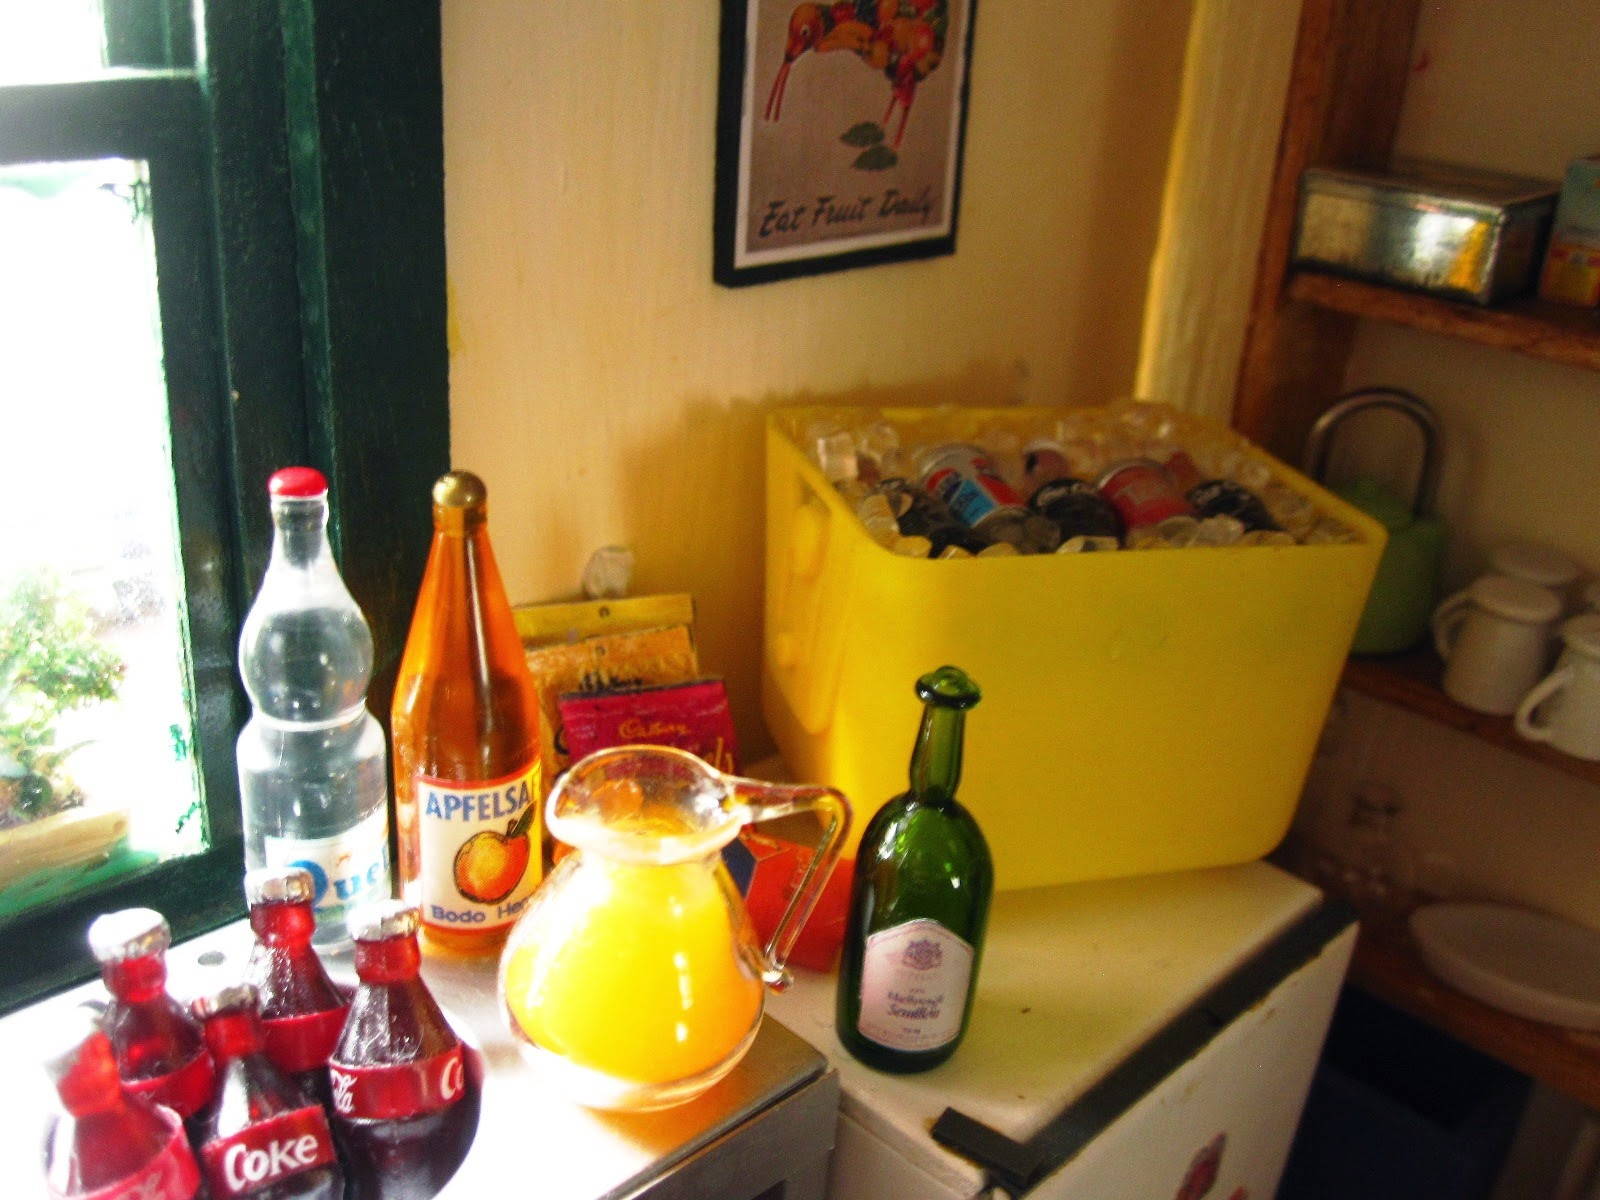 Selection of miniature dolls' house non-alcoholic drinks arranged in a kitchen, ready for a party.